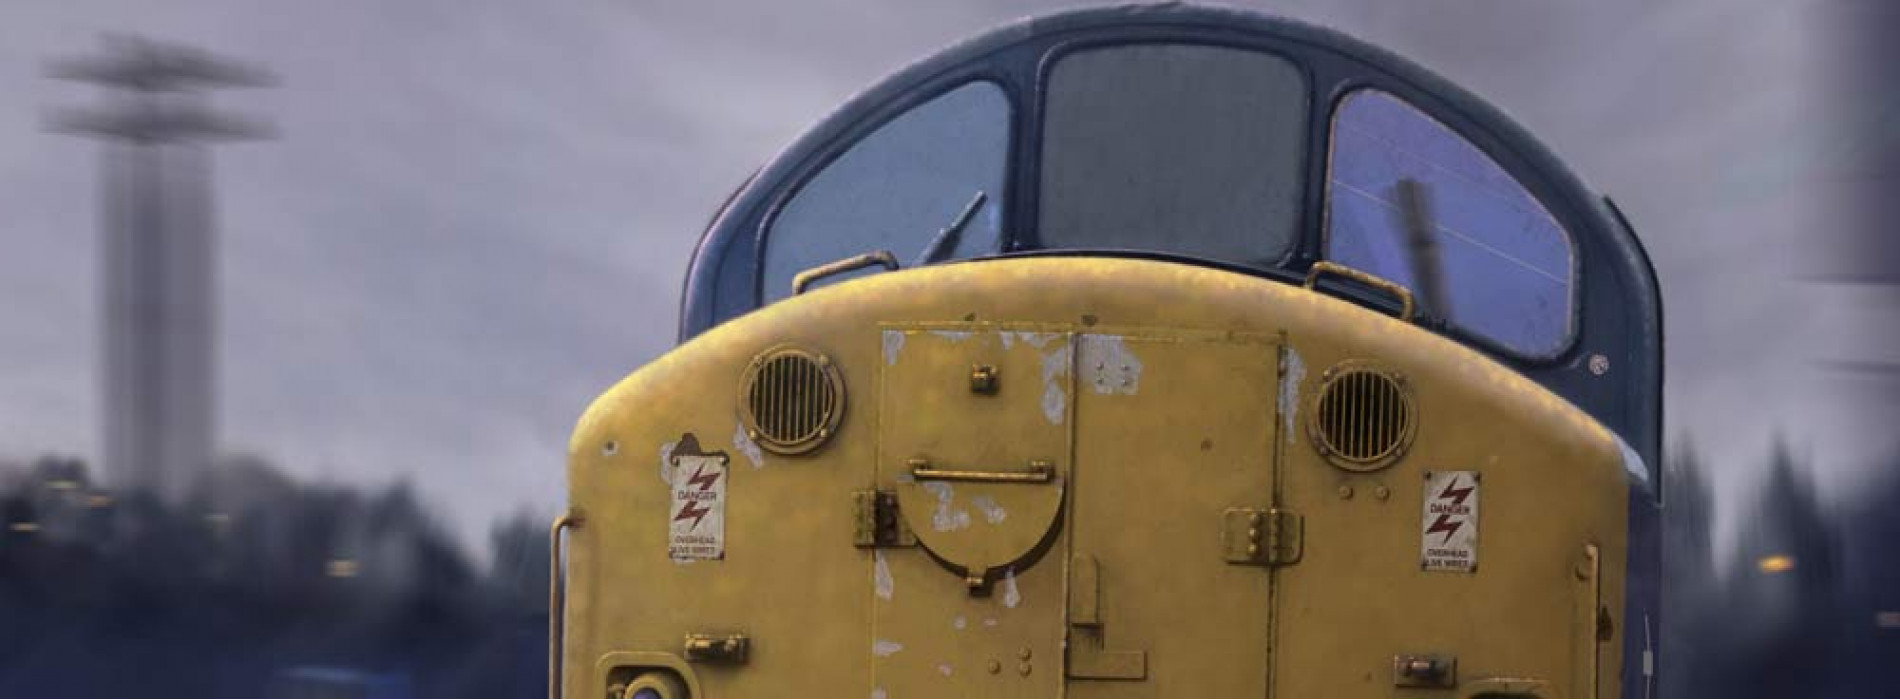 Class 40 driving cab